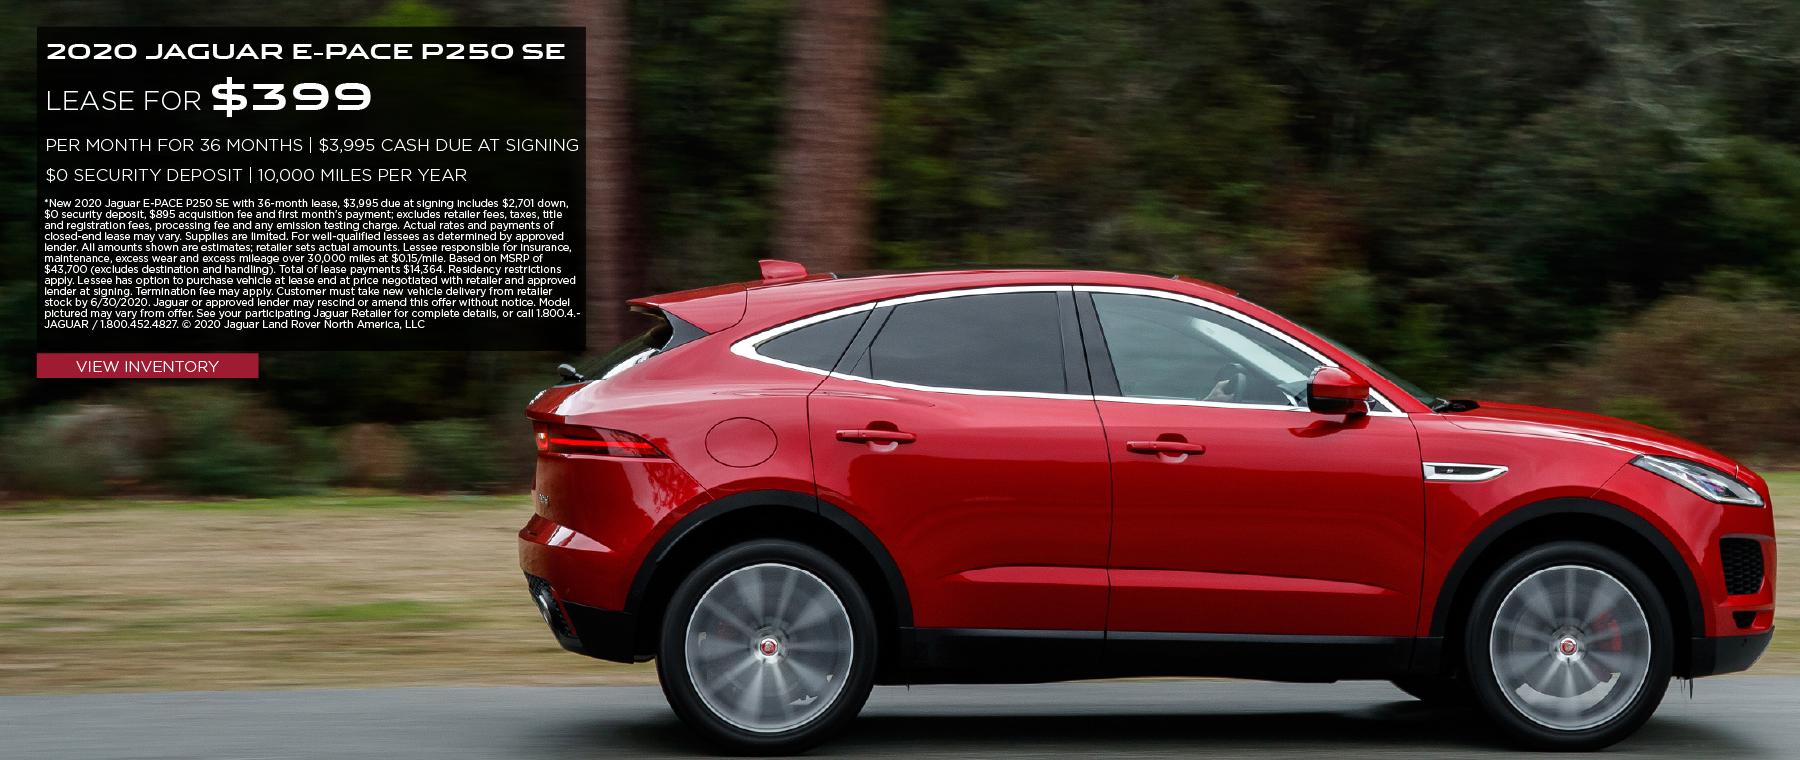 2020 JAGUAR E-PACE P250 SE. $399 PER MONTH. 36 MONTH LEASE TERM. $3,995 CASH DUE AT SIGNING. $0 SECURITY DEPOSIT. 10,000 MILES PER YEAR. EXCLUDES RETAILER FEES, TAXES, TITLE AND REGISTRATION FEES, PROCESSING FEE AND ANY EMISSION TESTING CHARGE. OFFER ENDS 6/30/2020. VIEW INVENTORY. RED JAGUAR E-PACE DRIVING DOWN ROAD IN COUNTRYSIDE.